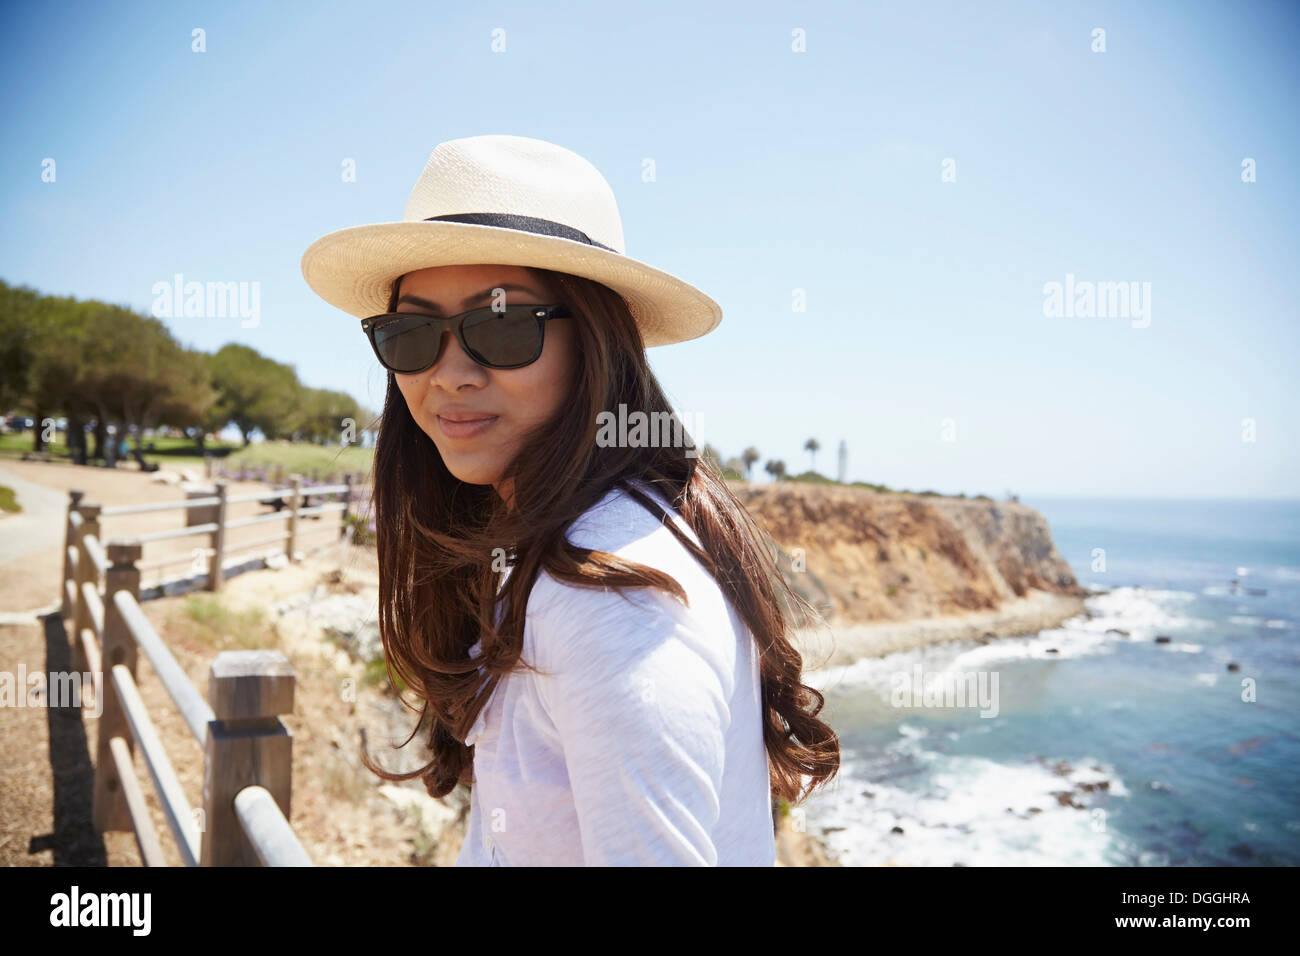 Portrait of young woman wearing sunhat, Palos Verdes, California, USA - Stock Image